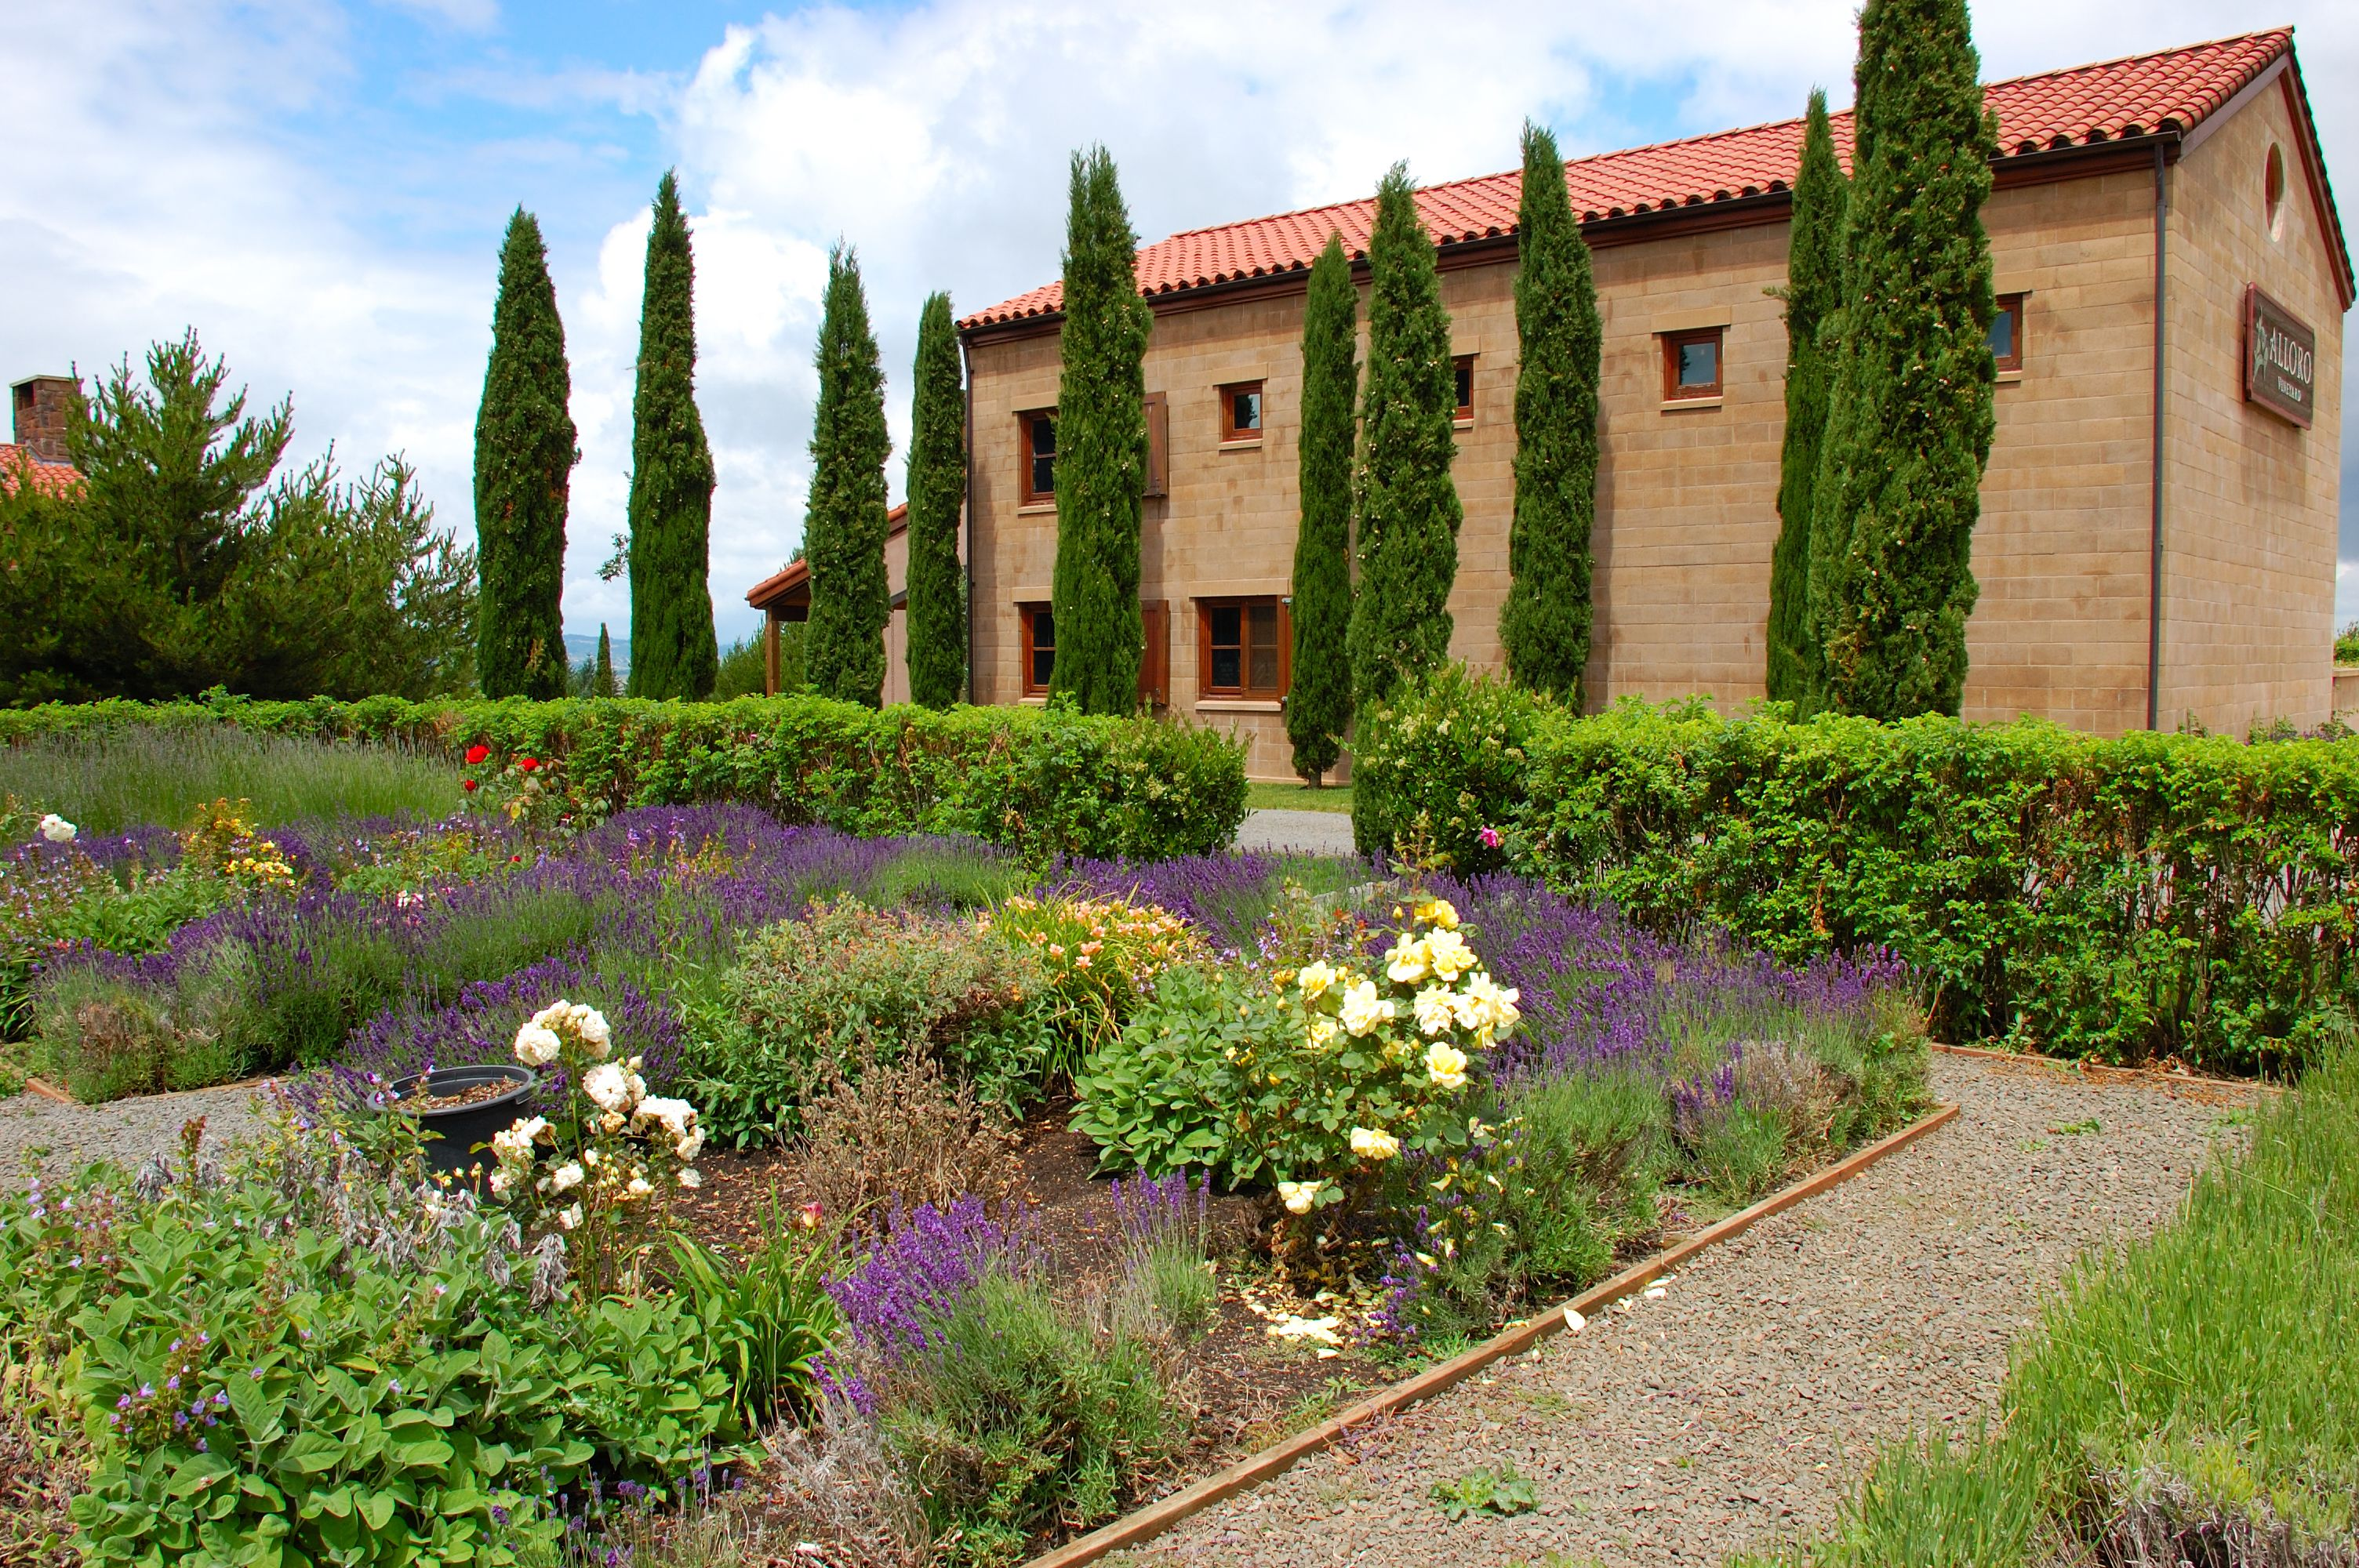 Alloro Vineyards, in Sherwood, Oregon, is one of several